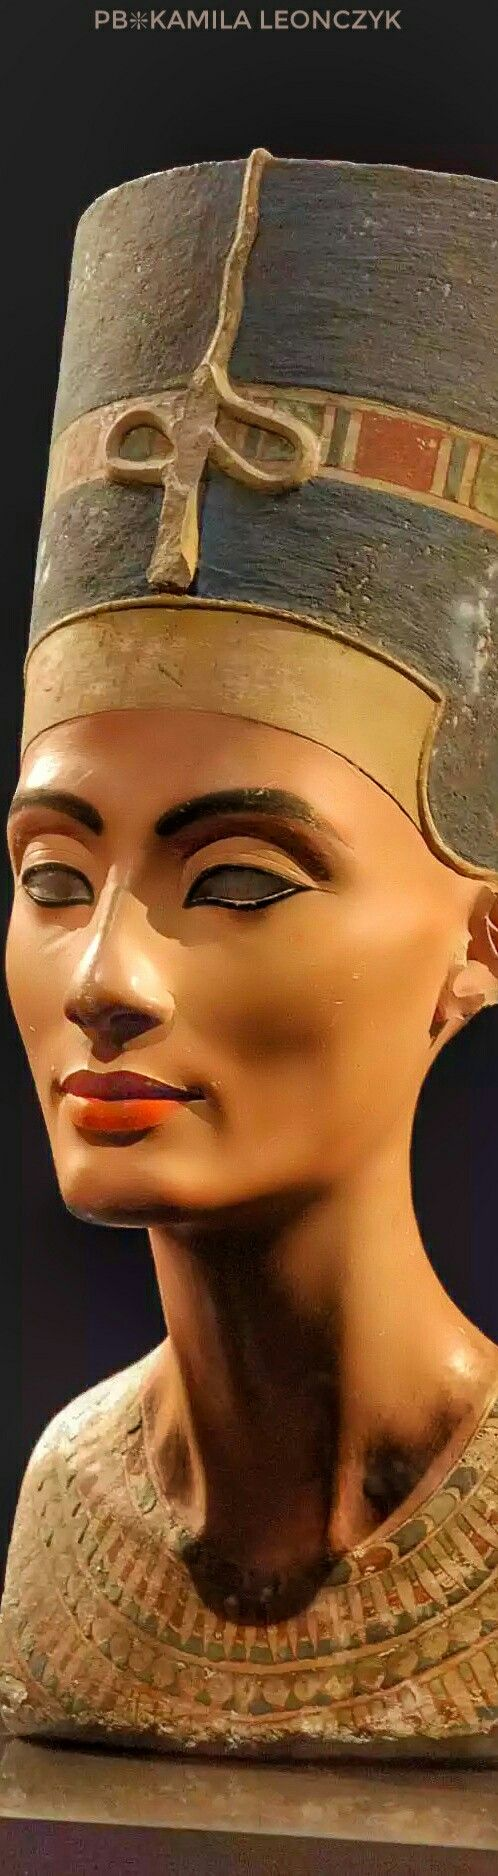 The iconic bust ofNefertitiis part of theEgyptian Museum of Berlincollection, currently on display in theNeues Museum - TheNefertiti Bustis a paintedstucco-coatedlimestonebustofNefertiti, theGreat Royal Wifeof theEgyptianPharaohAkhenaten.The work is believed to have been crafted in 1345B.C. by the sculptorThutmose, because it was found in his workshop inAmarna,Egypt